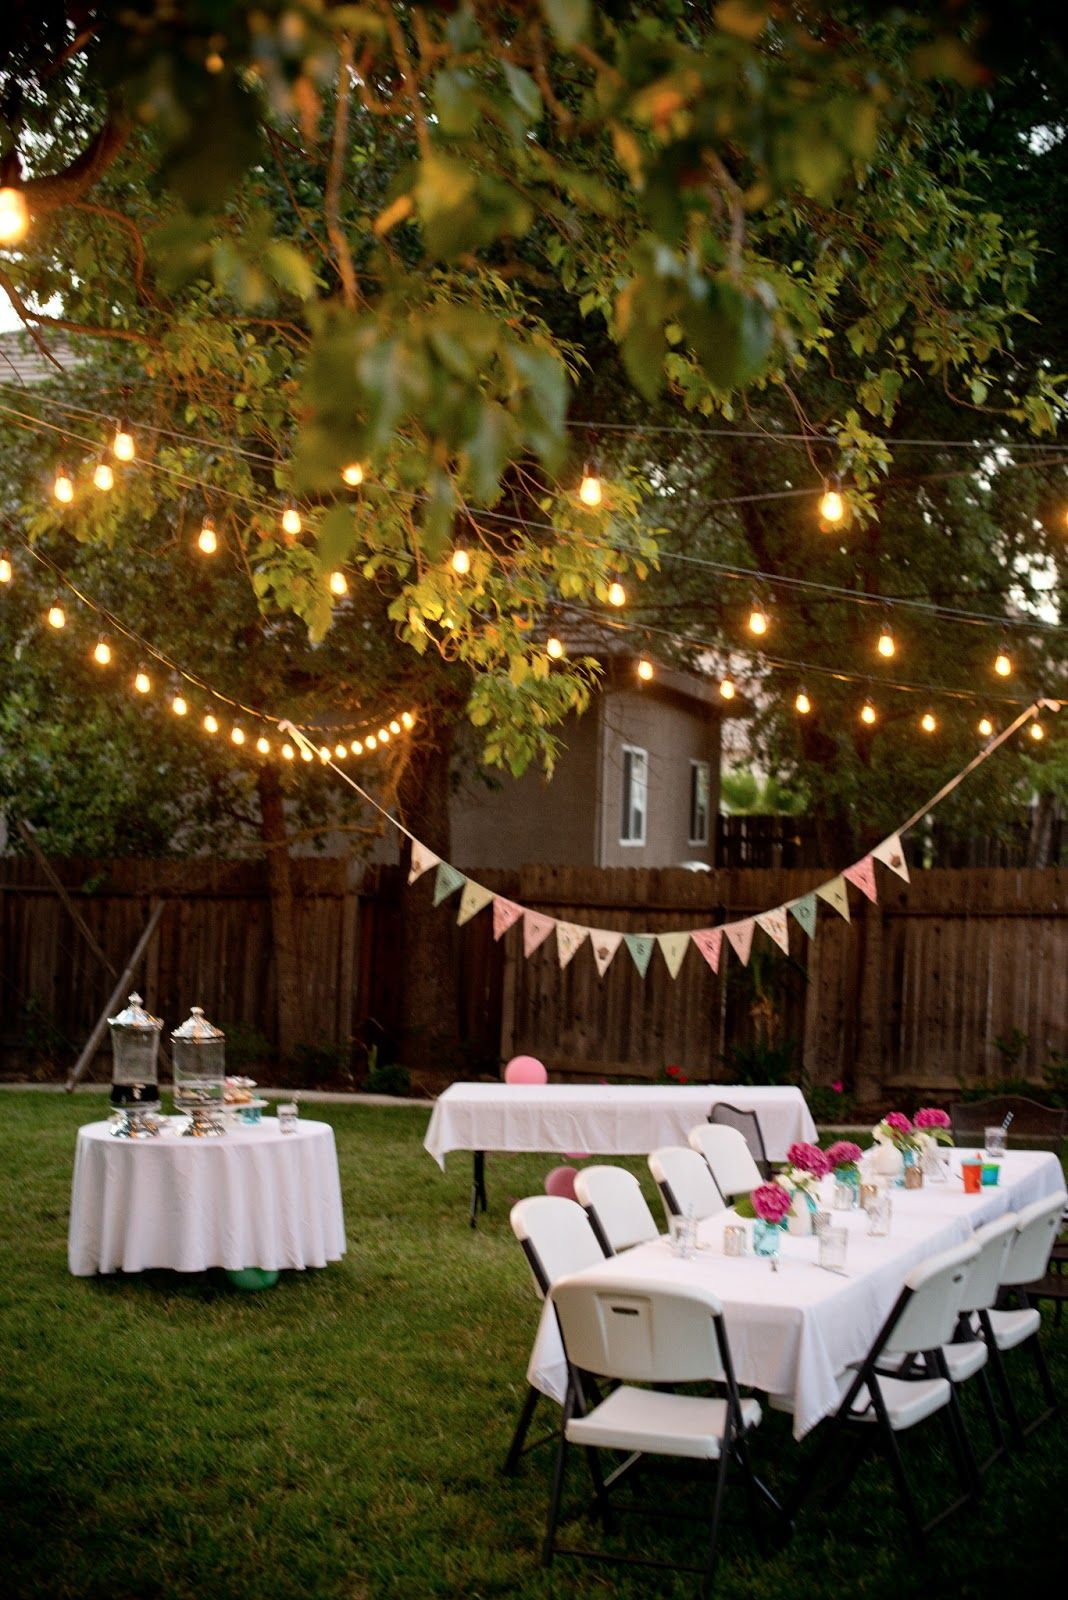 It Looks So Inviting Backyard Party